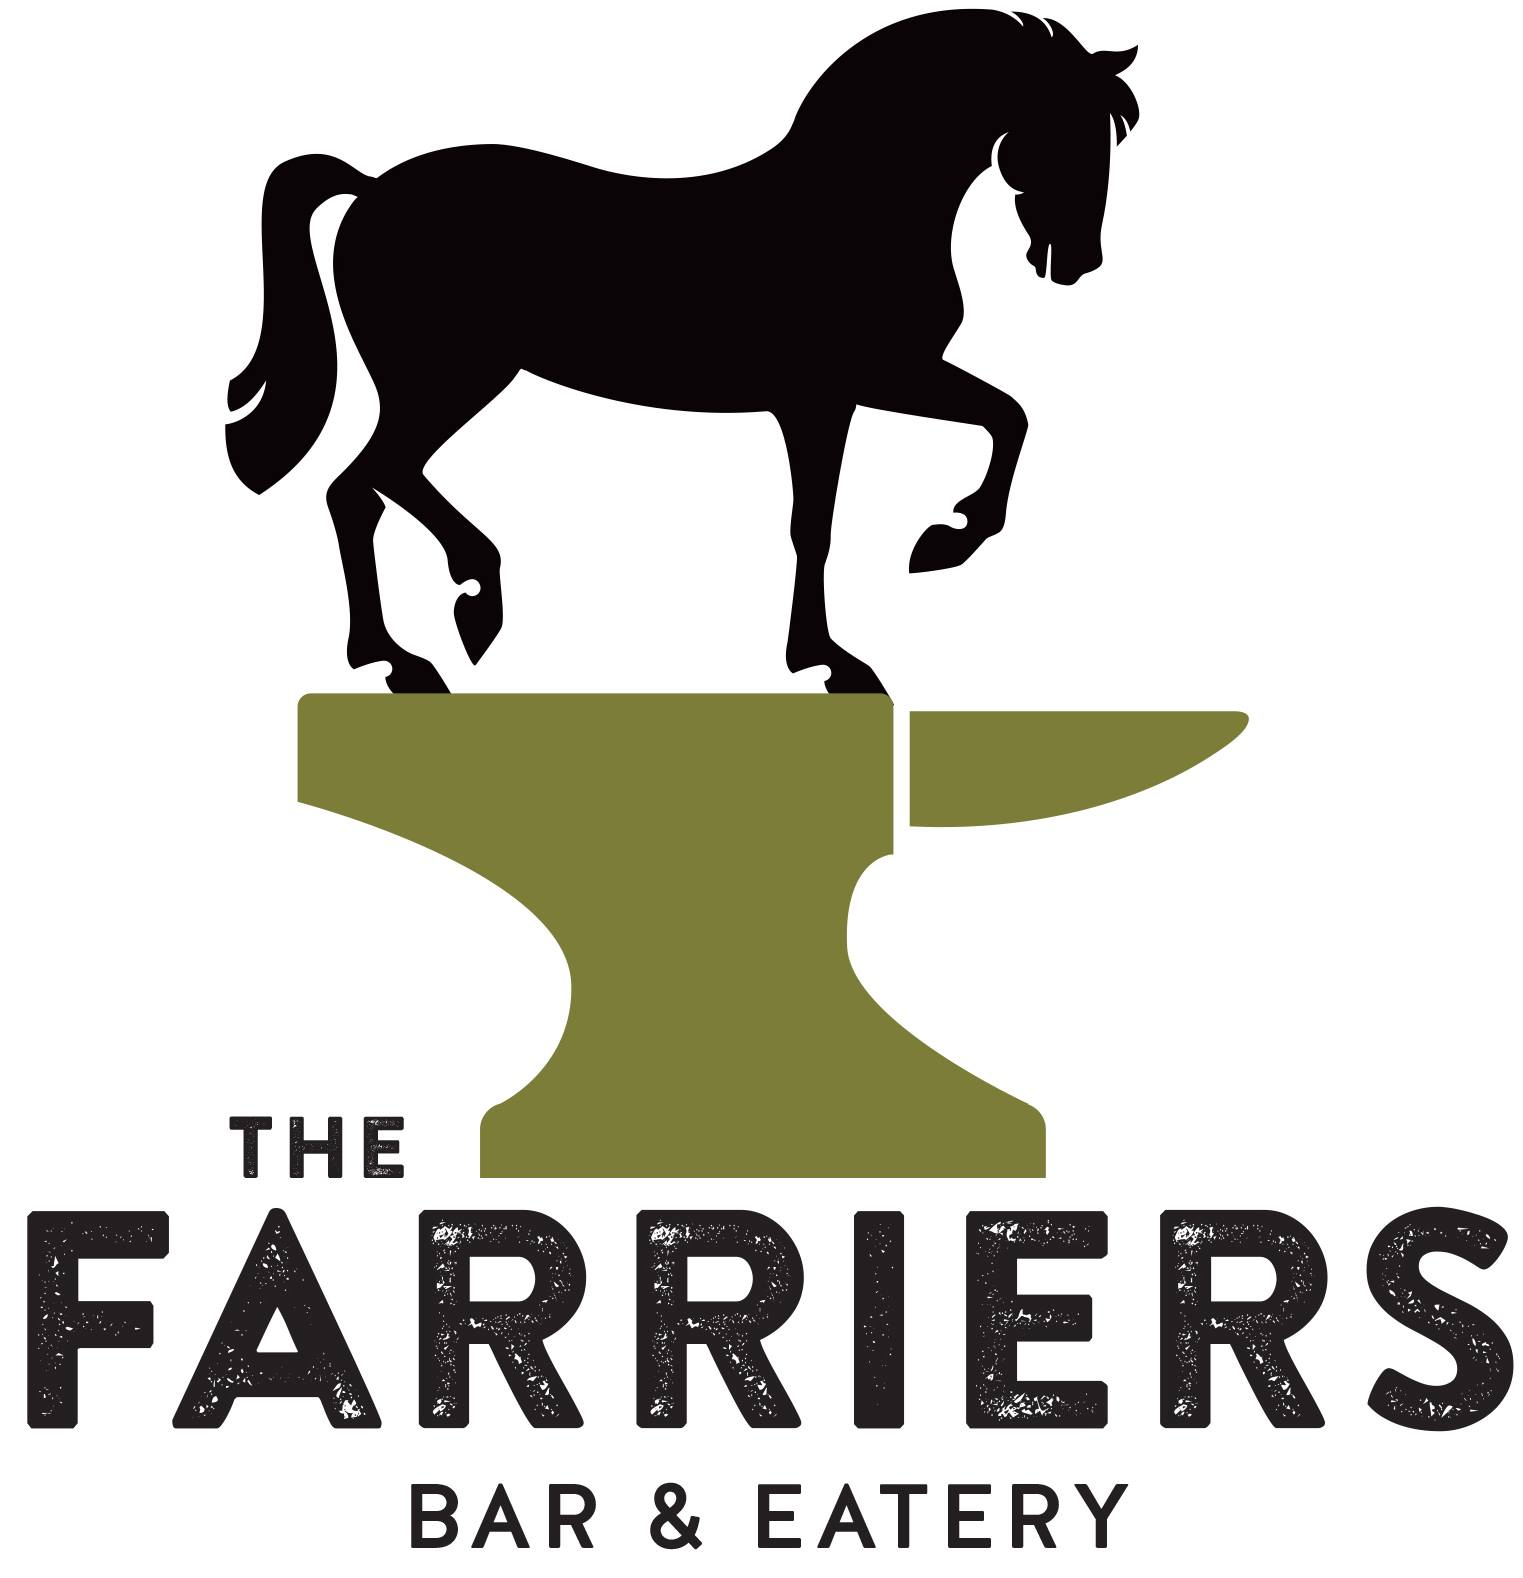 The Farriers Bar & Eatery